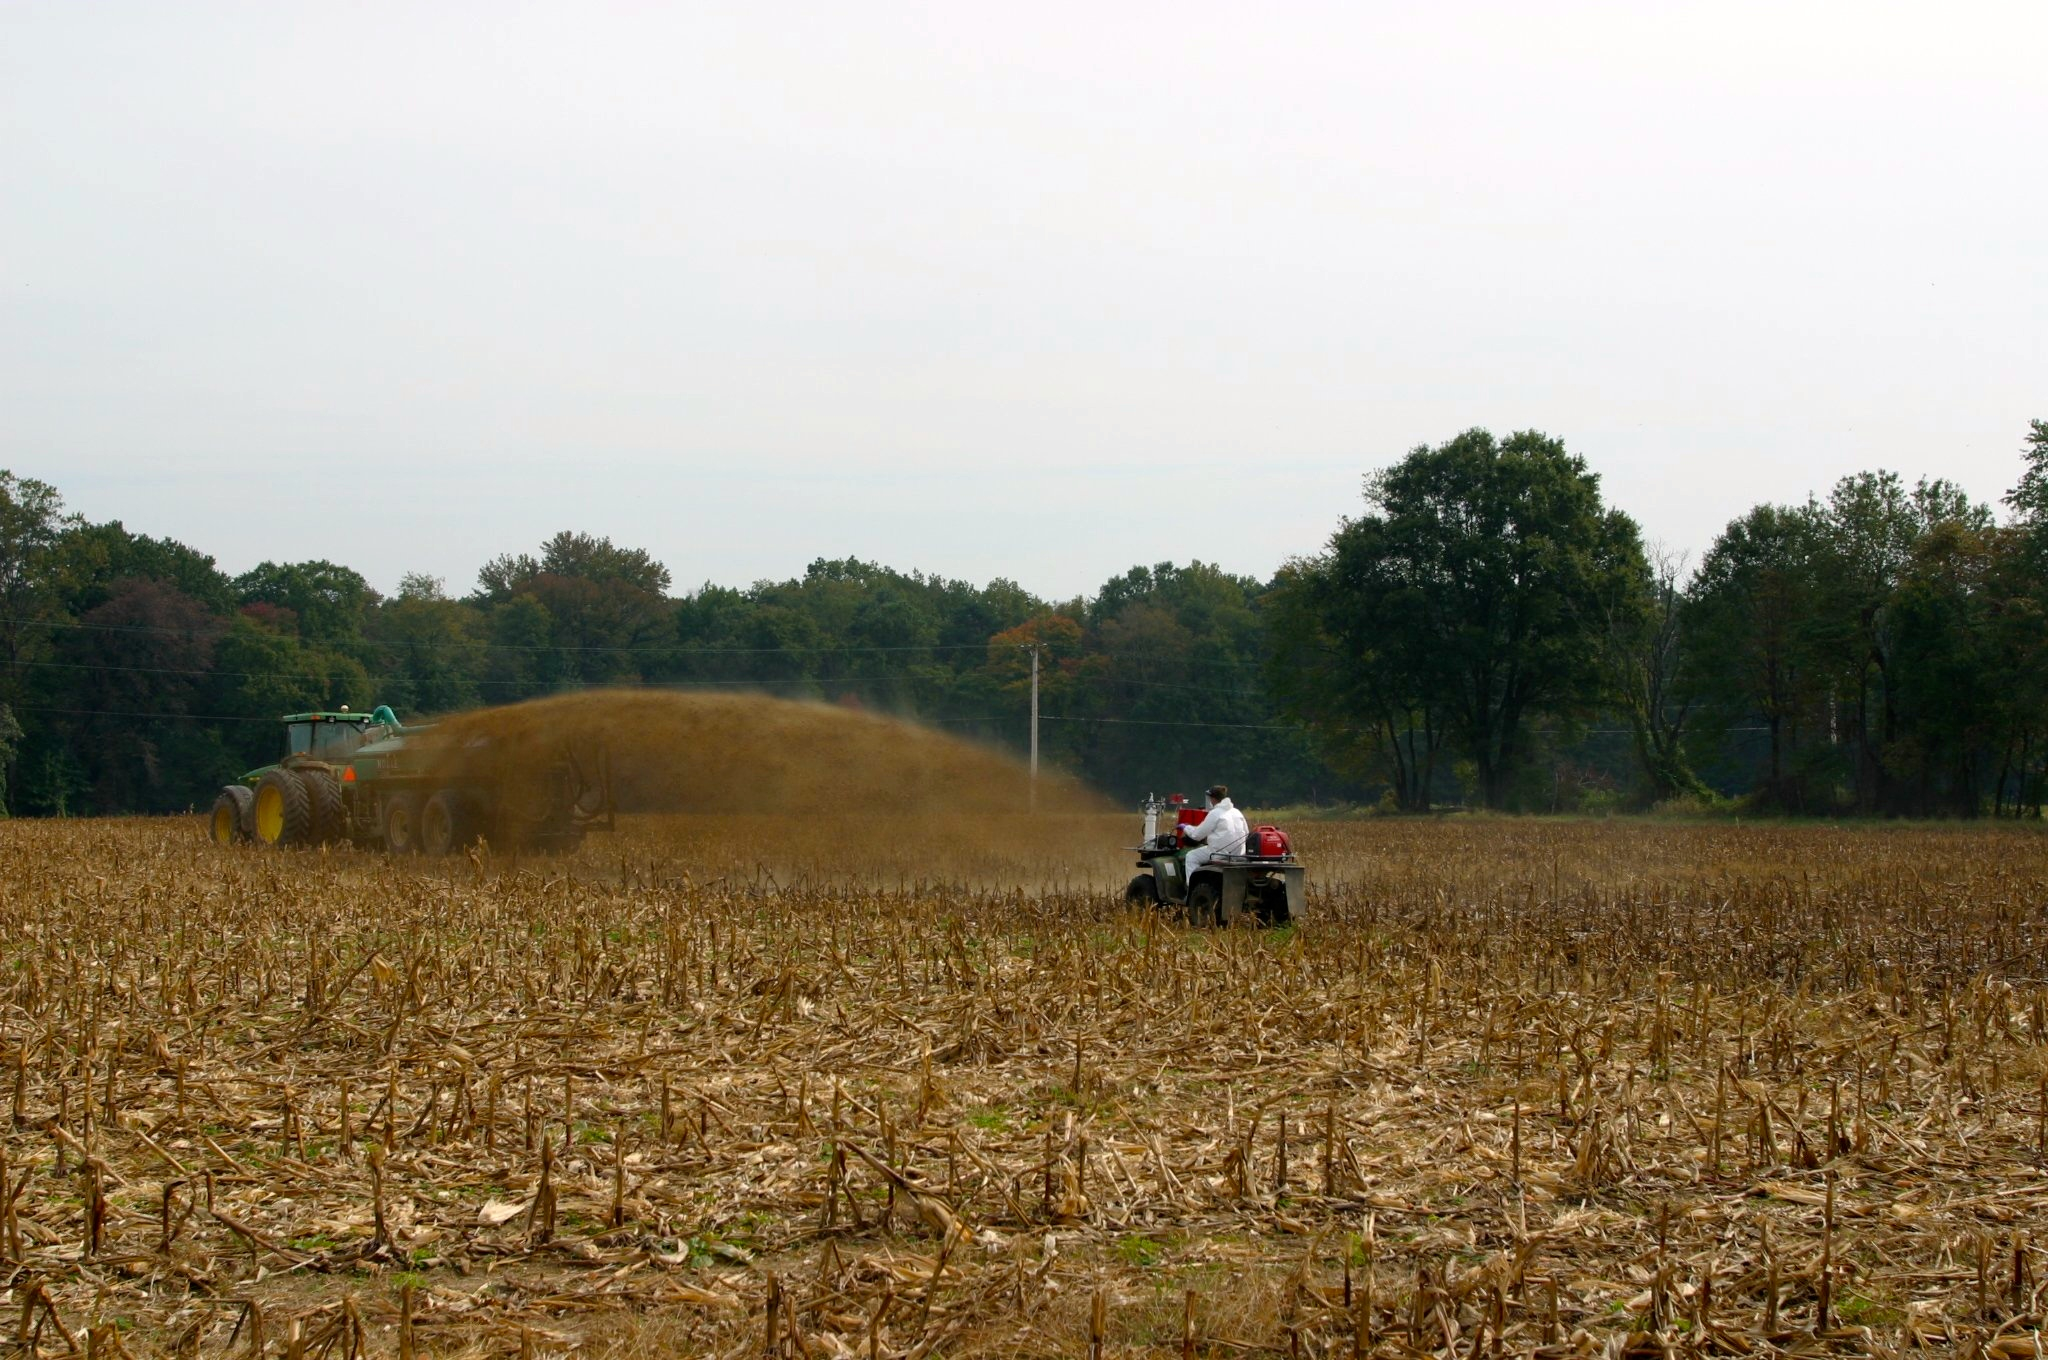 National bioaerosols research included testing at a Maine farmland application of biosolids.